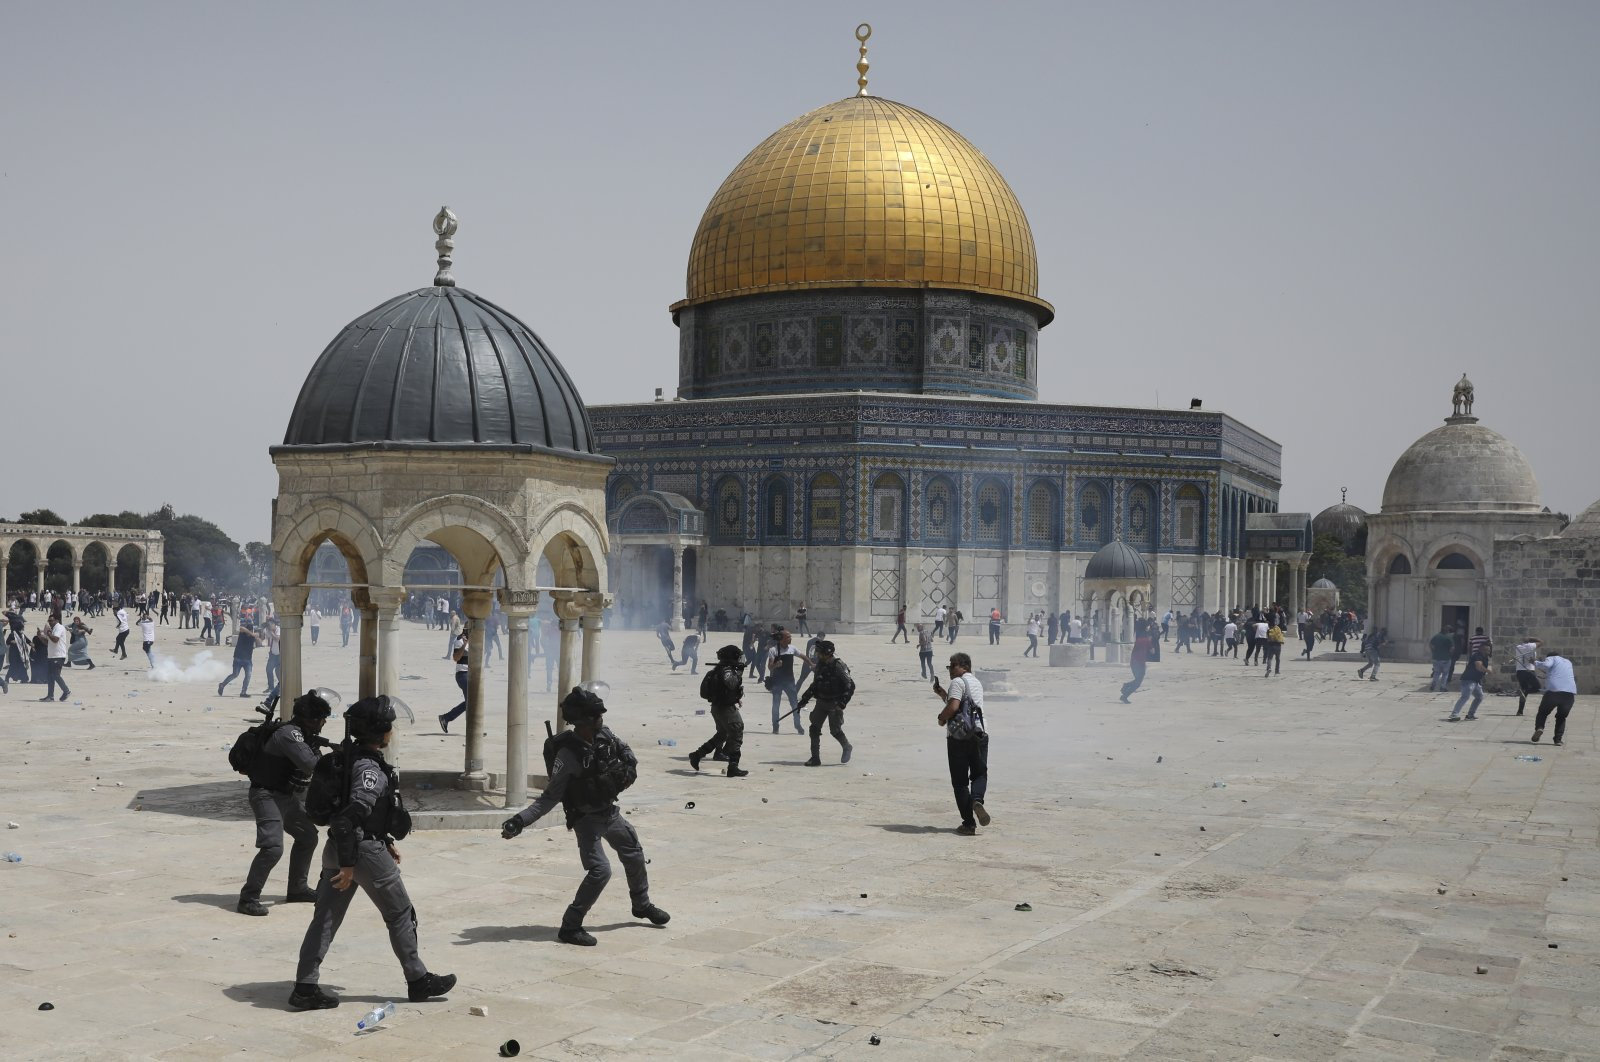 Palestinians run from sound grenades thrown by Israeli police in front of the Dome of the Rock in the al-Aqsa mosque complex in Jerusalem, Friday, May 21, 202, as a cease-fire took effect between Hamas and Israel after an 11-day war. (AP Photo)